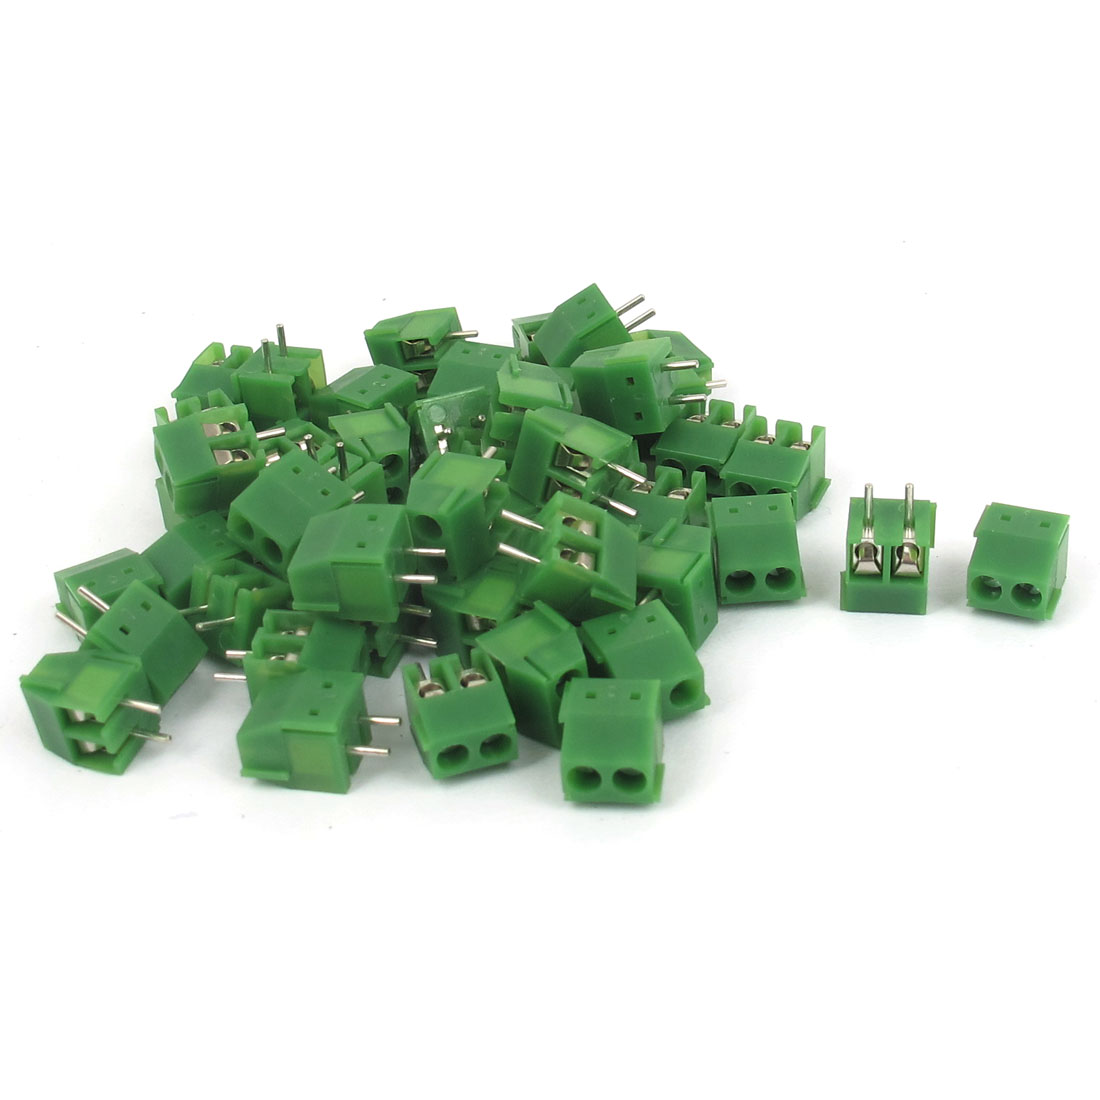 50 Pcs 300V 16A 3mm Pitch 2P 2 Position PCB Terminal Block Connector